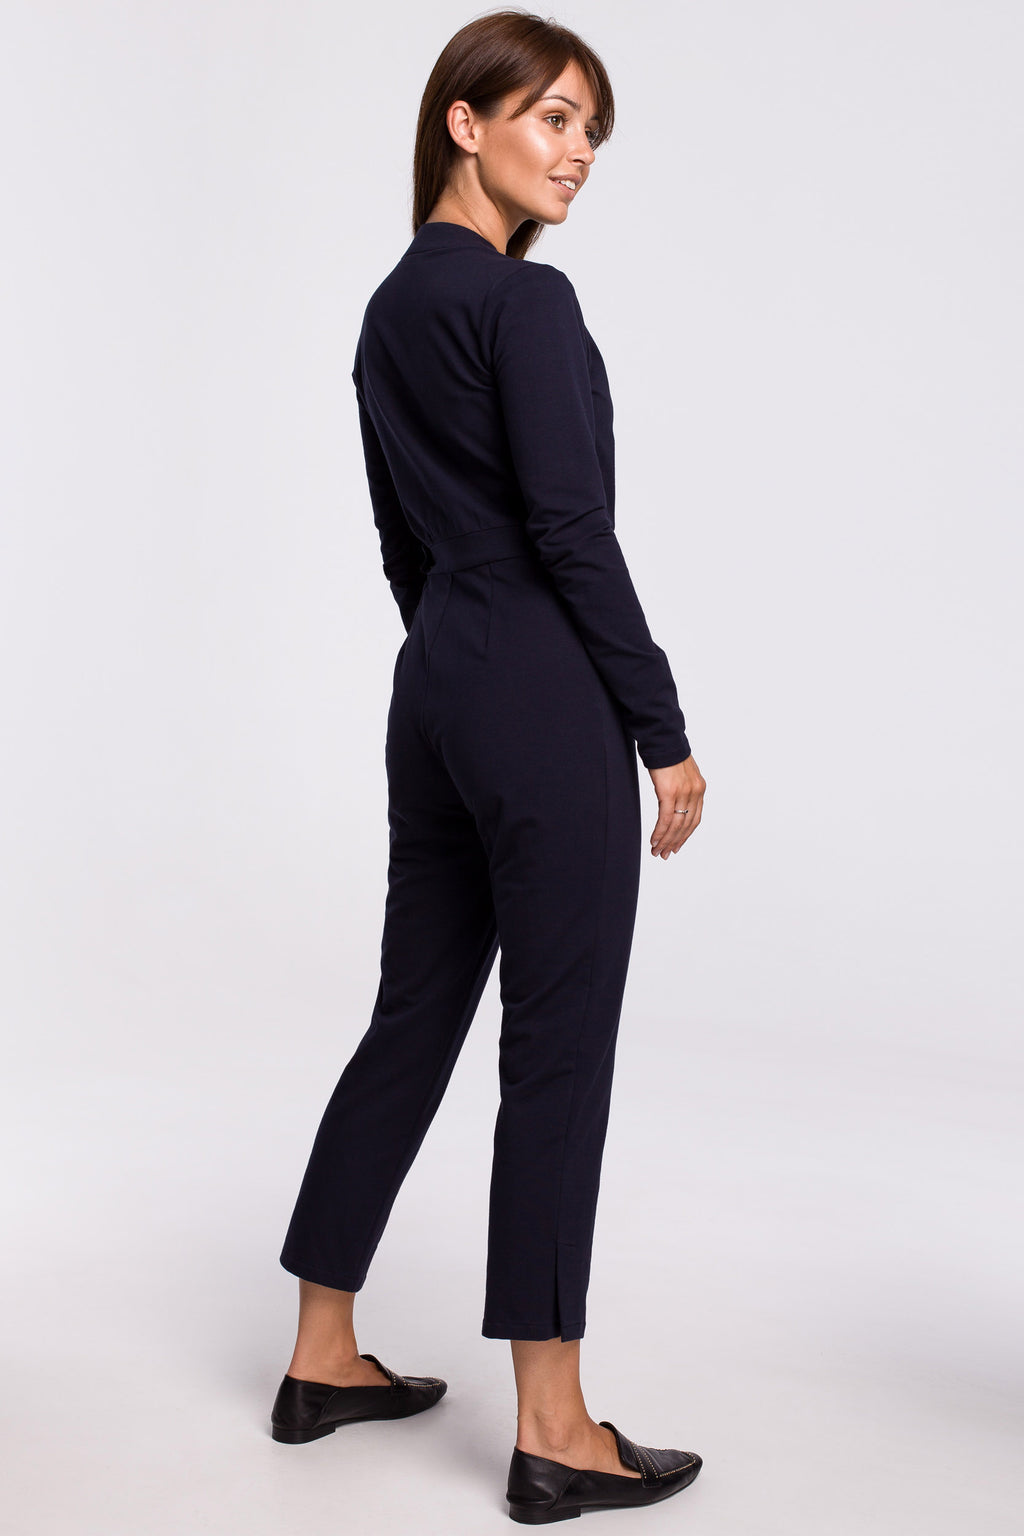 Navy Blue Wrap Front Top Jumpsuit With A Buckle - So Chic Boutique